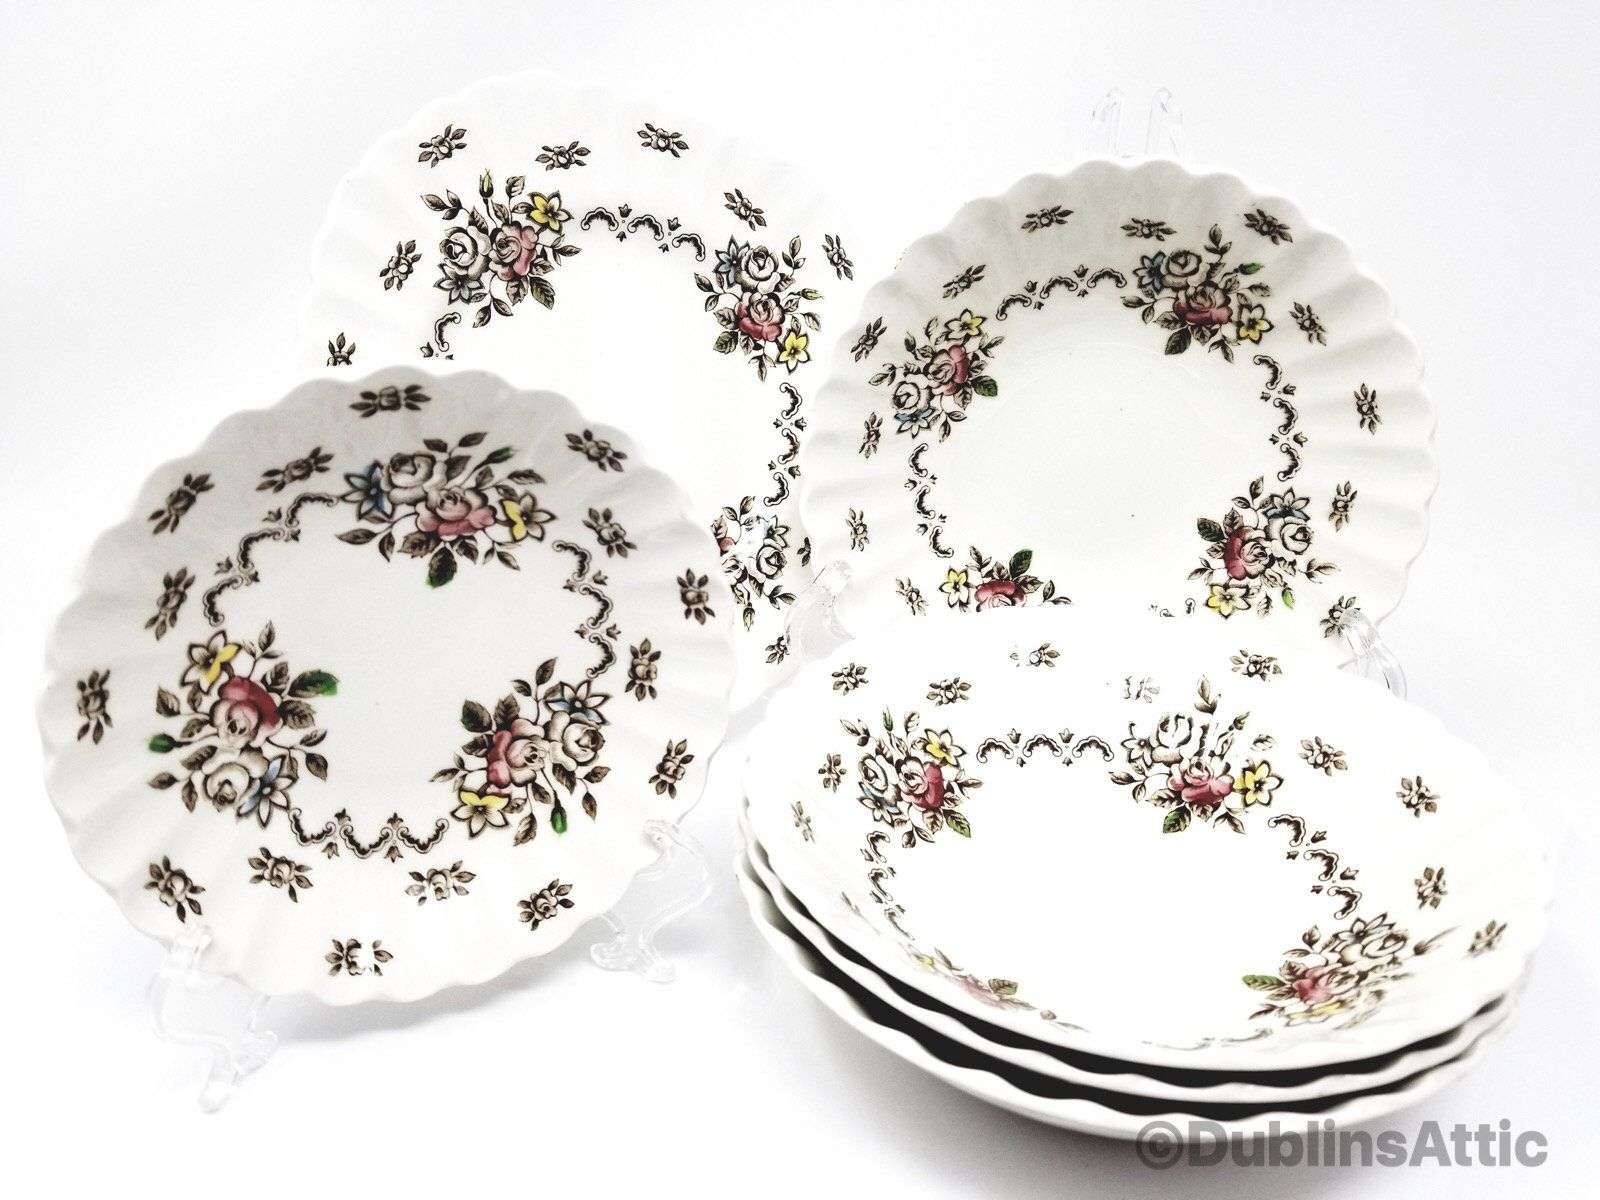 Vintage English Staffordshire Bowl Plate Set Classic White Chatsworth By J G Meakin England By Dublinsattic On Etsy Plates And Bowls Handmade Plate Sets